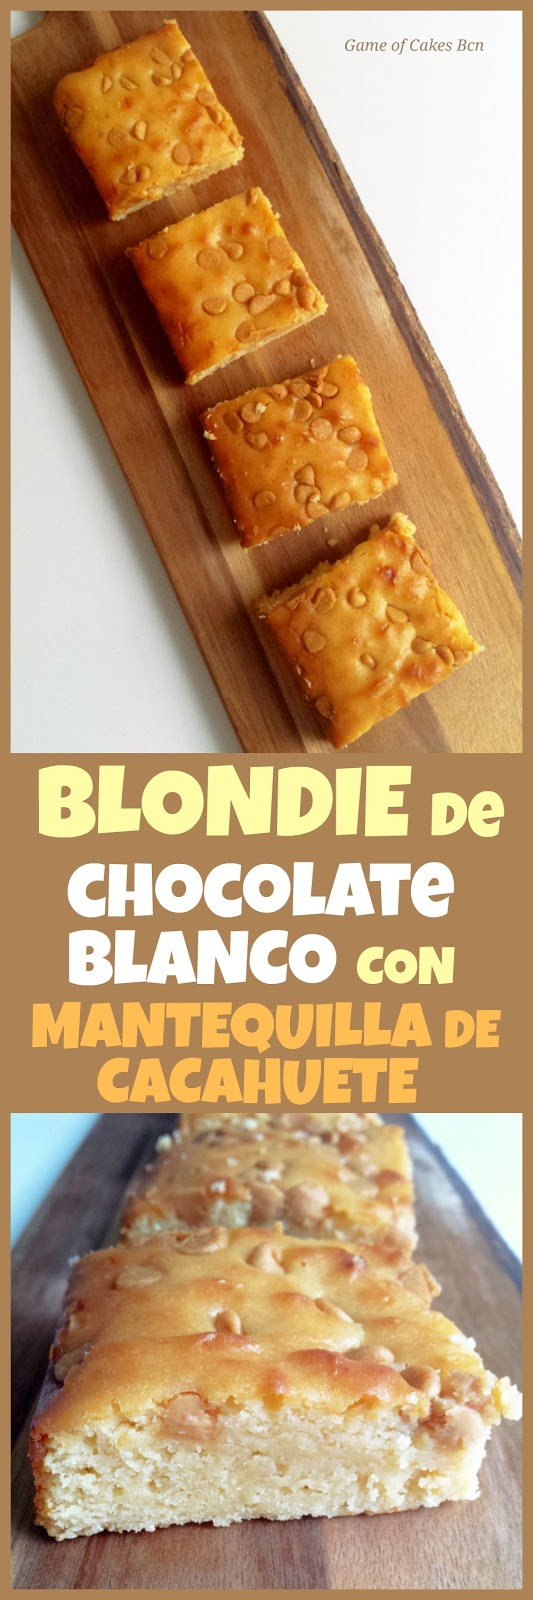 Brownie de chocolate blanco, blondie con chips de manterquilla de cacahuete